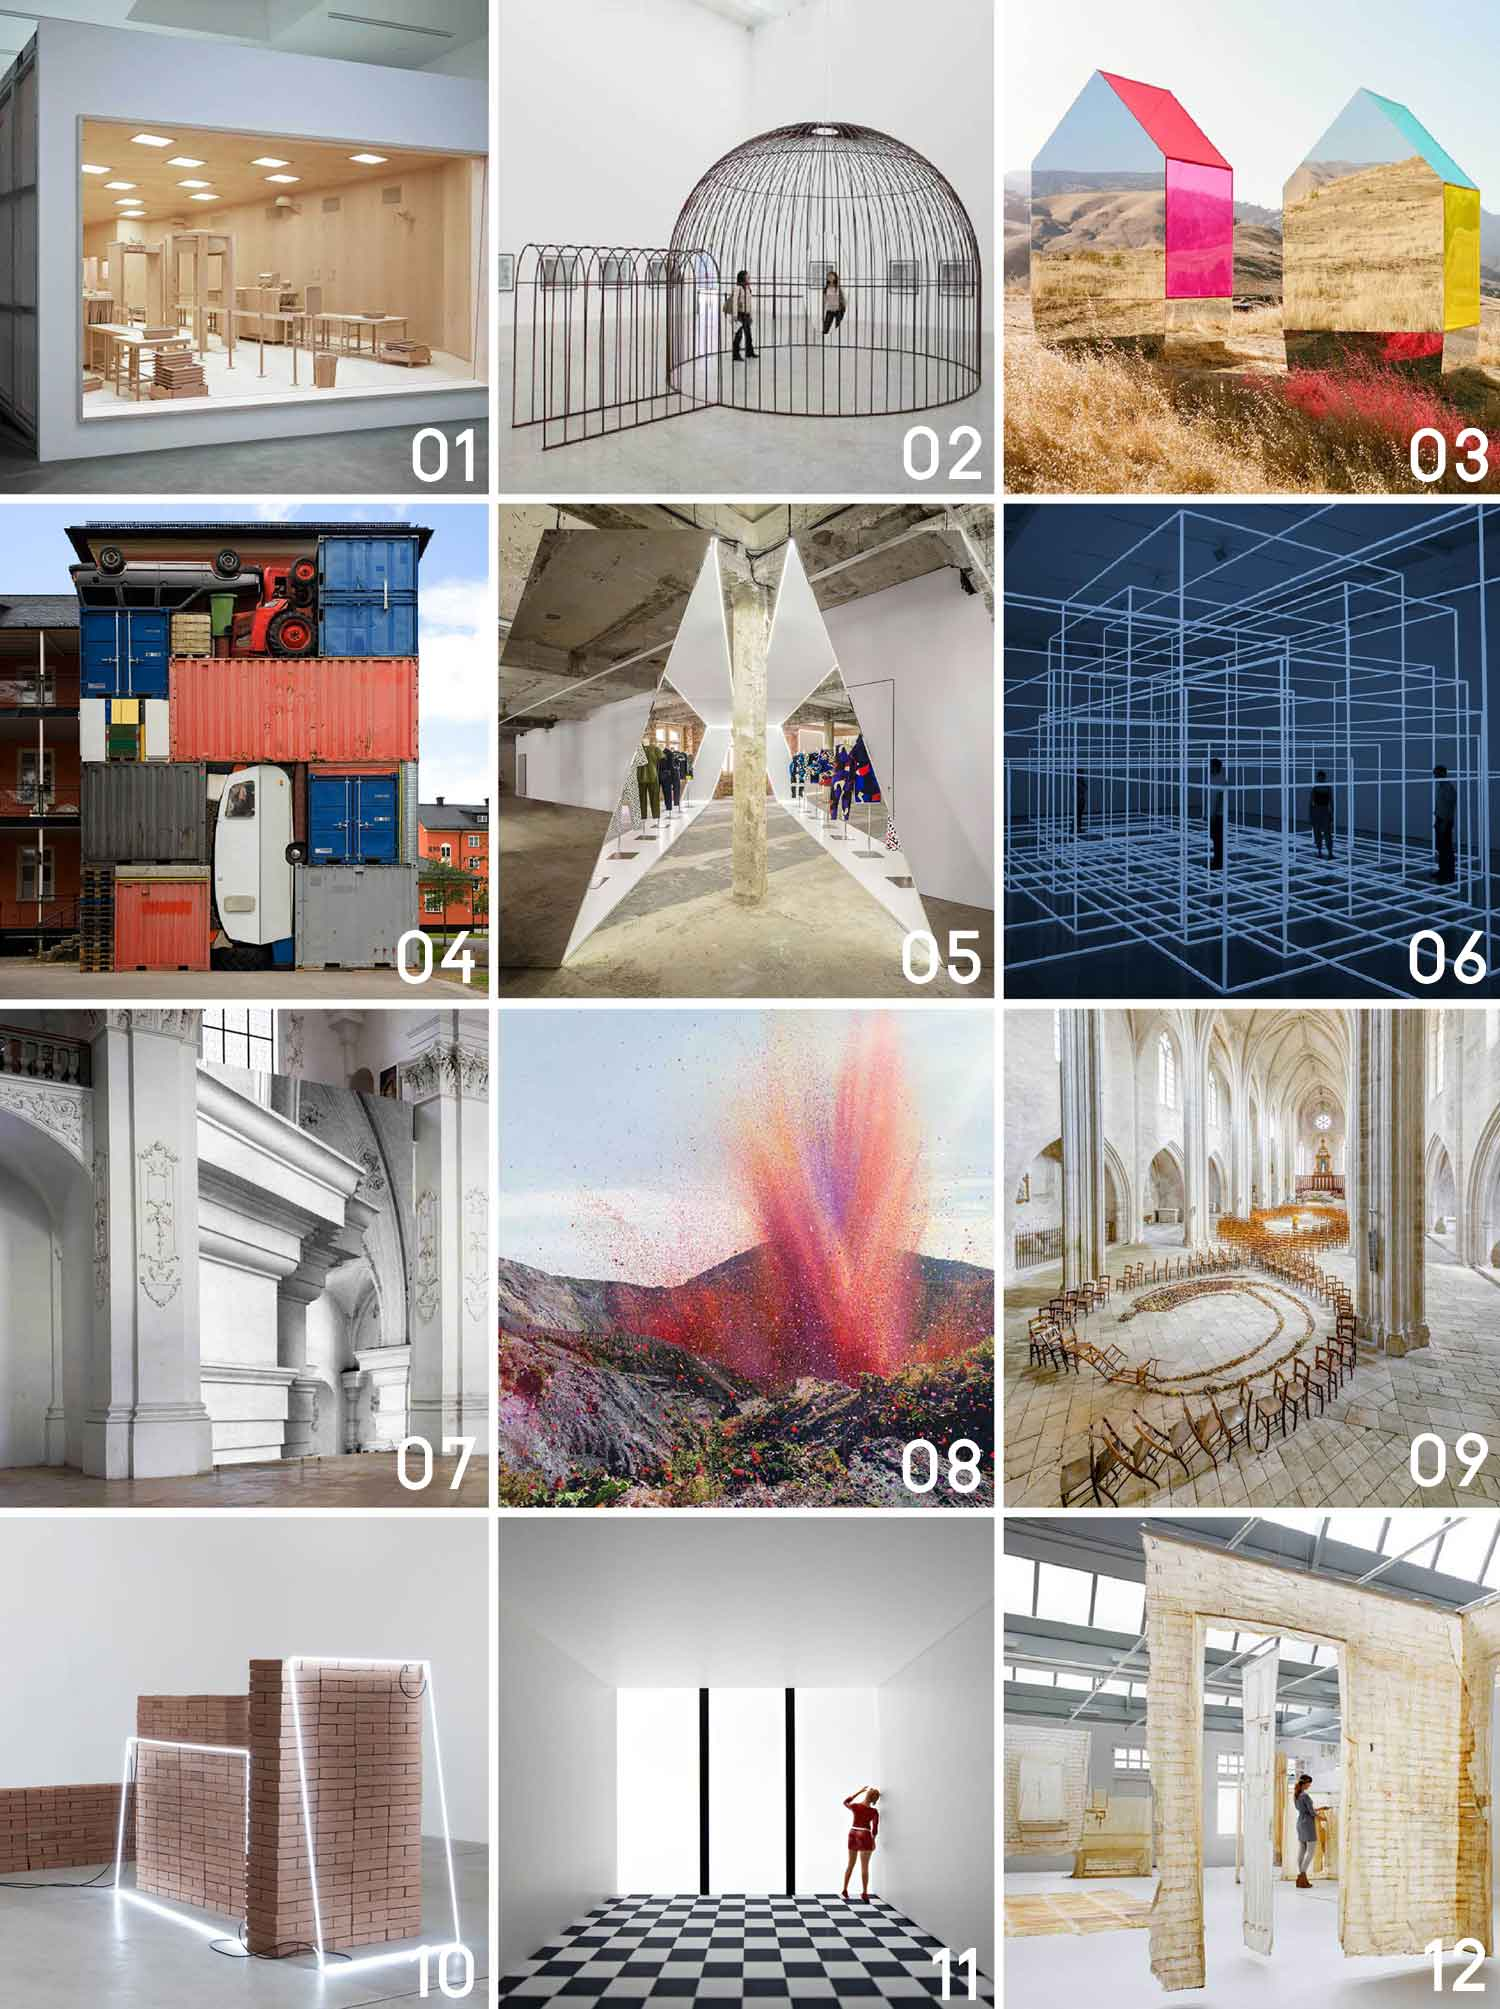 Installations, Set Design & Photography Yellowtrace 2014 Archives